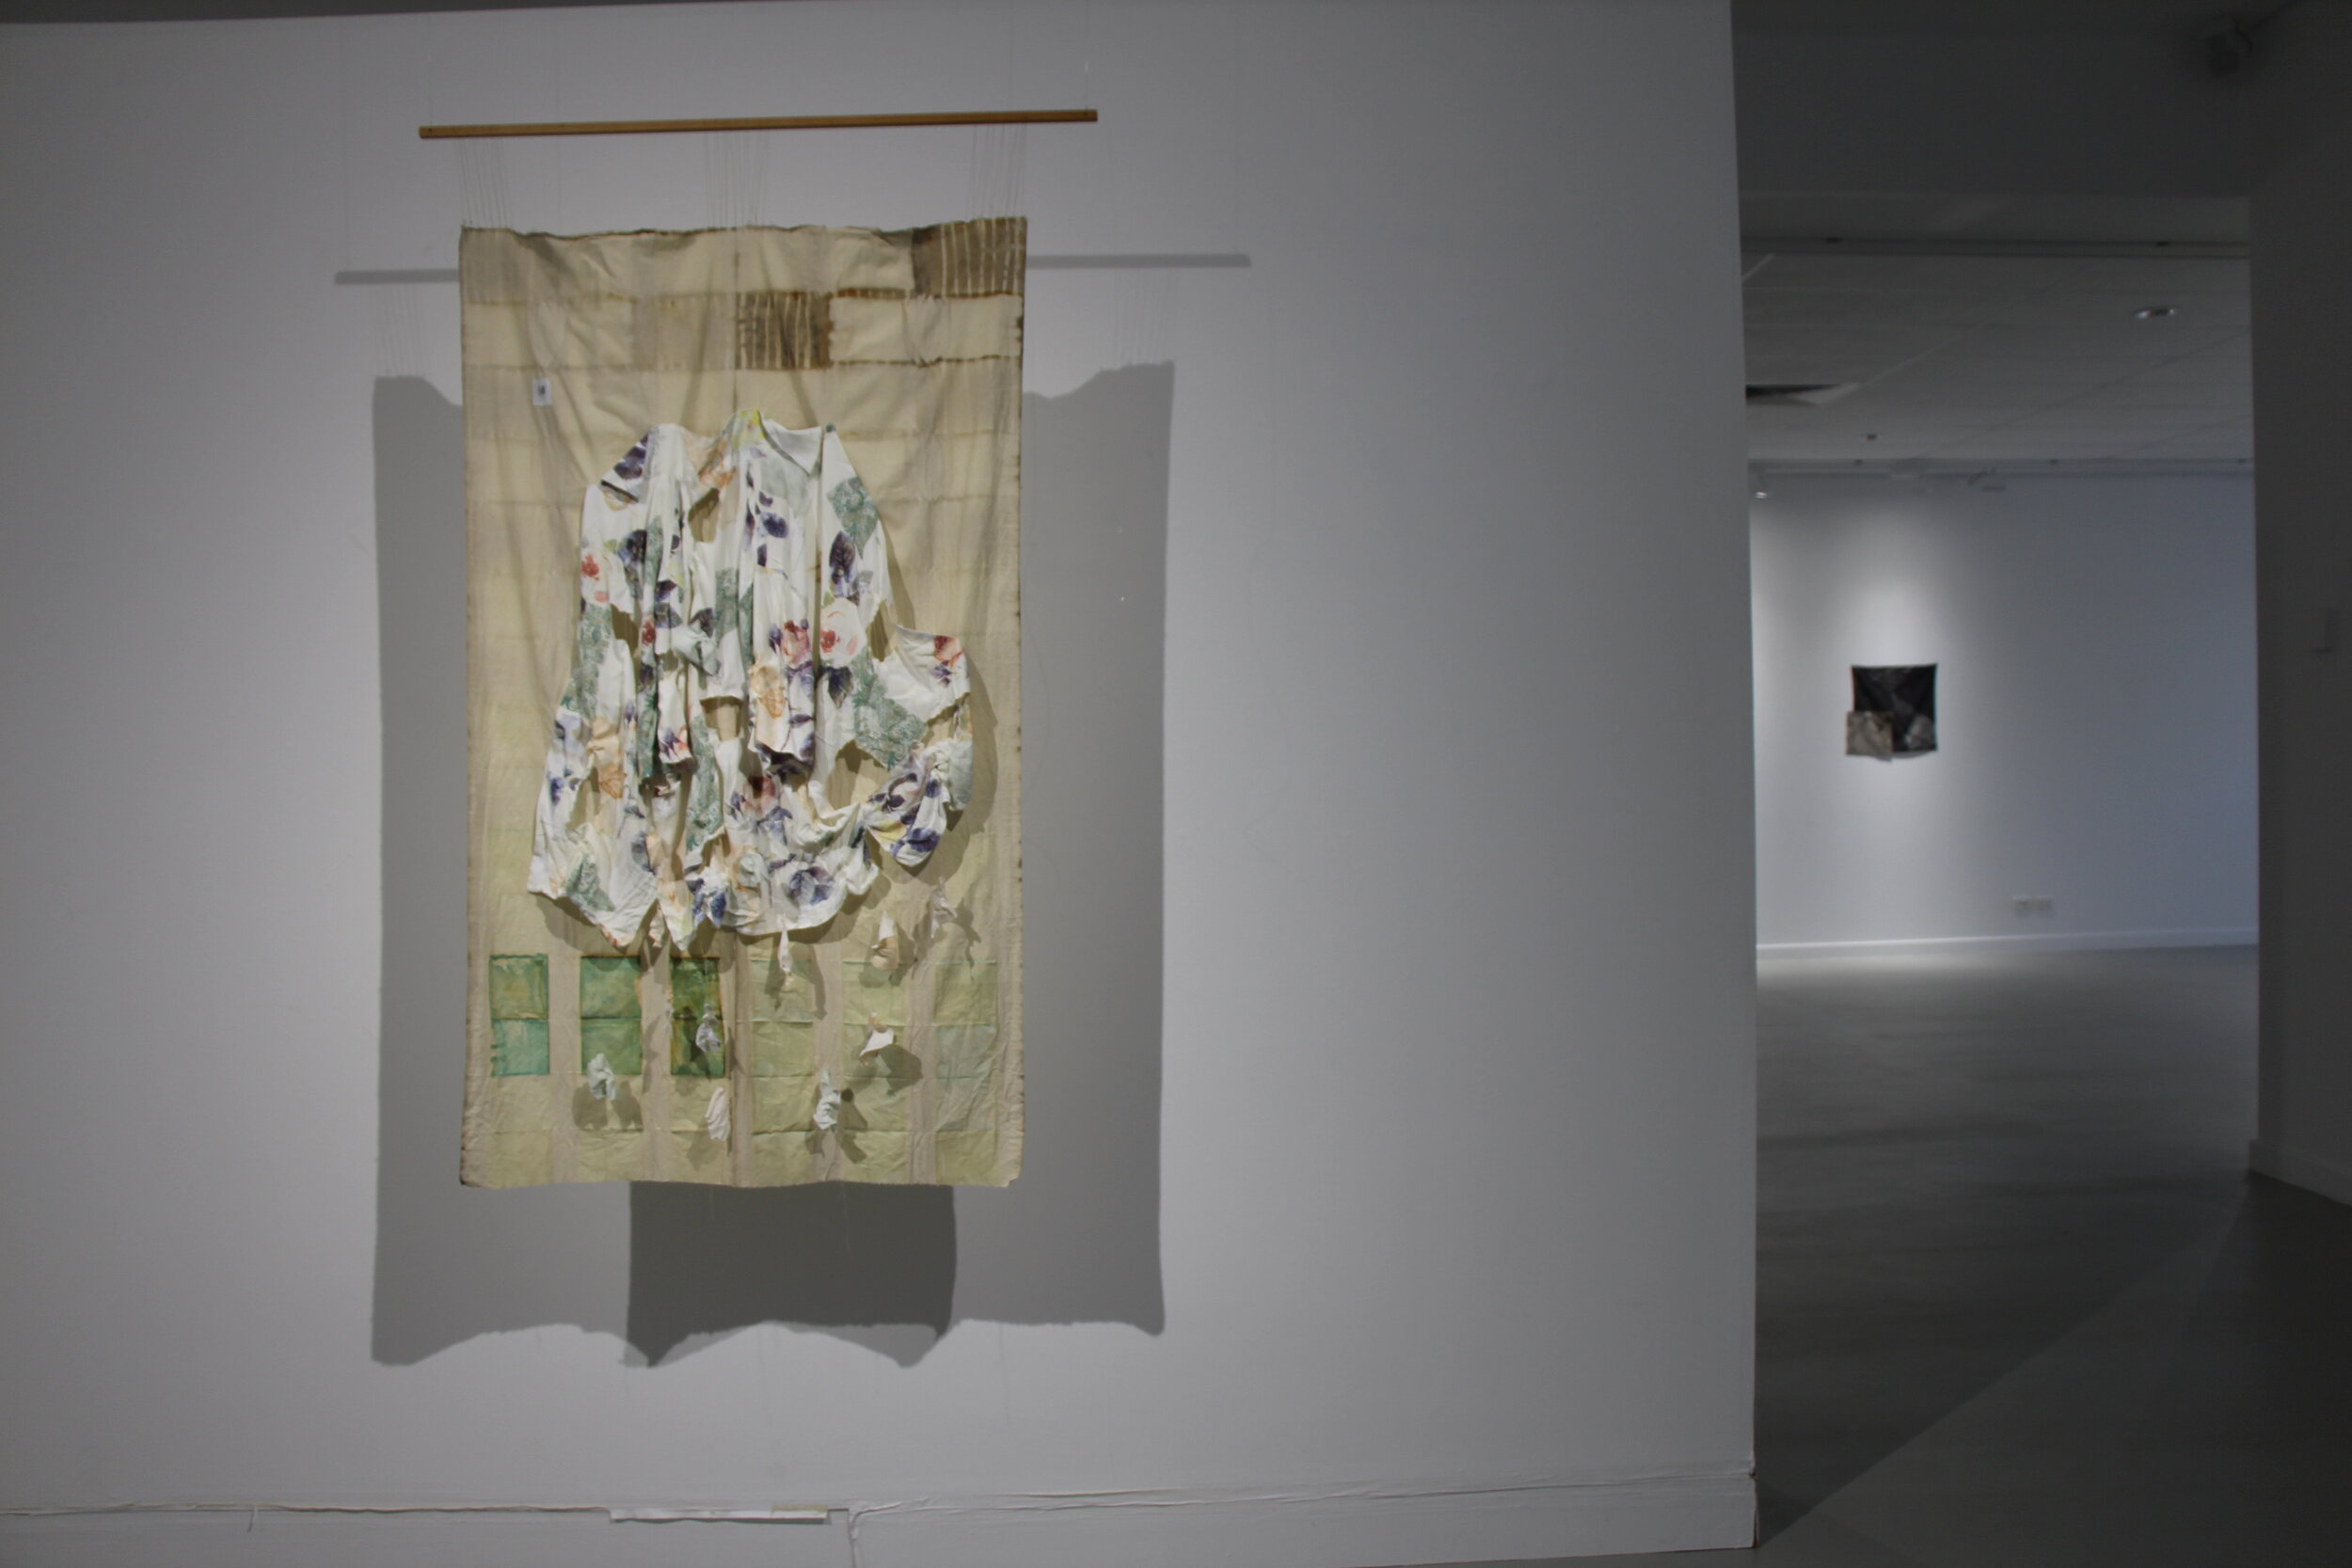 Fragmented Memories at Spectrum Project Space, ECU